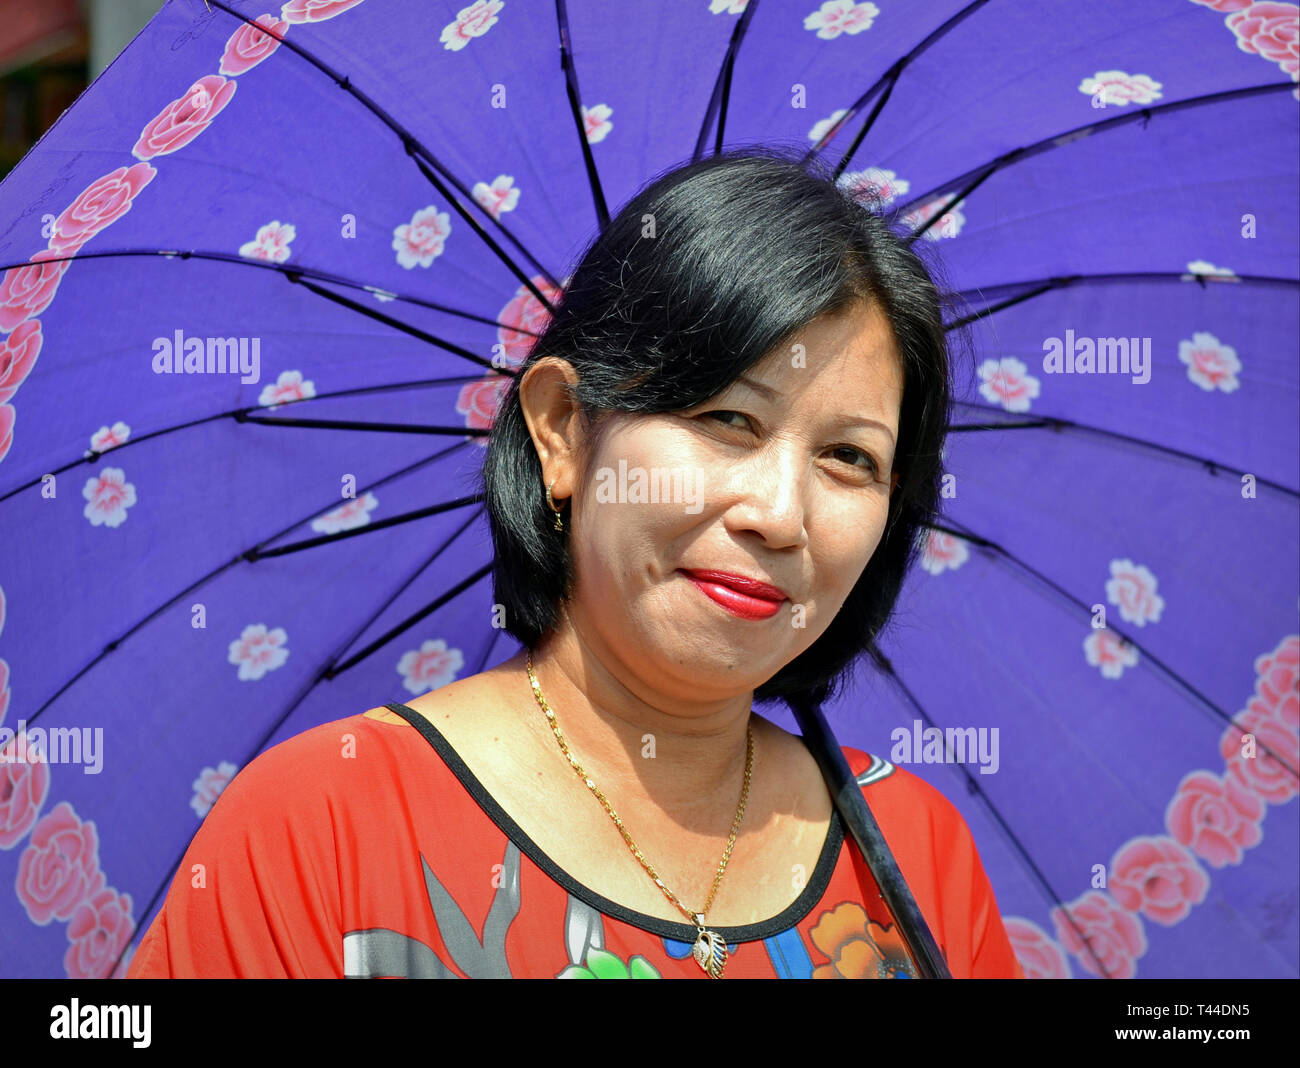 Indonesian woman from Central Kalimantan uses her blue umbrella as sunshade. - Stock Image